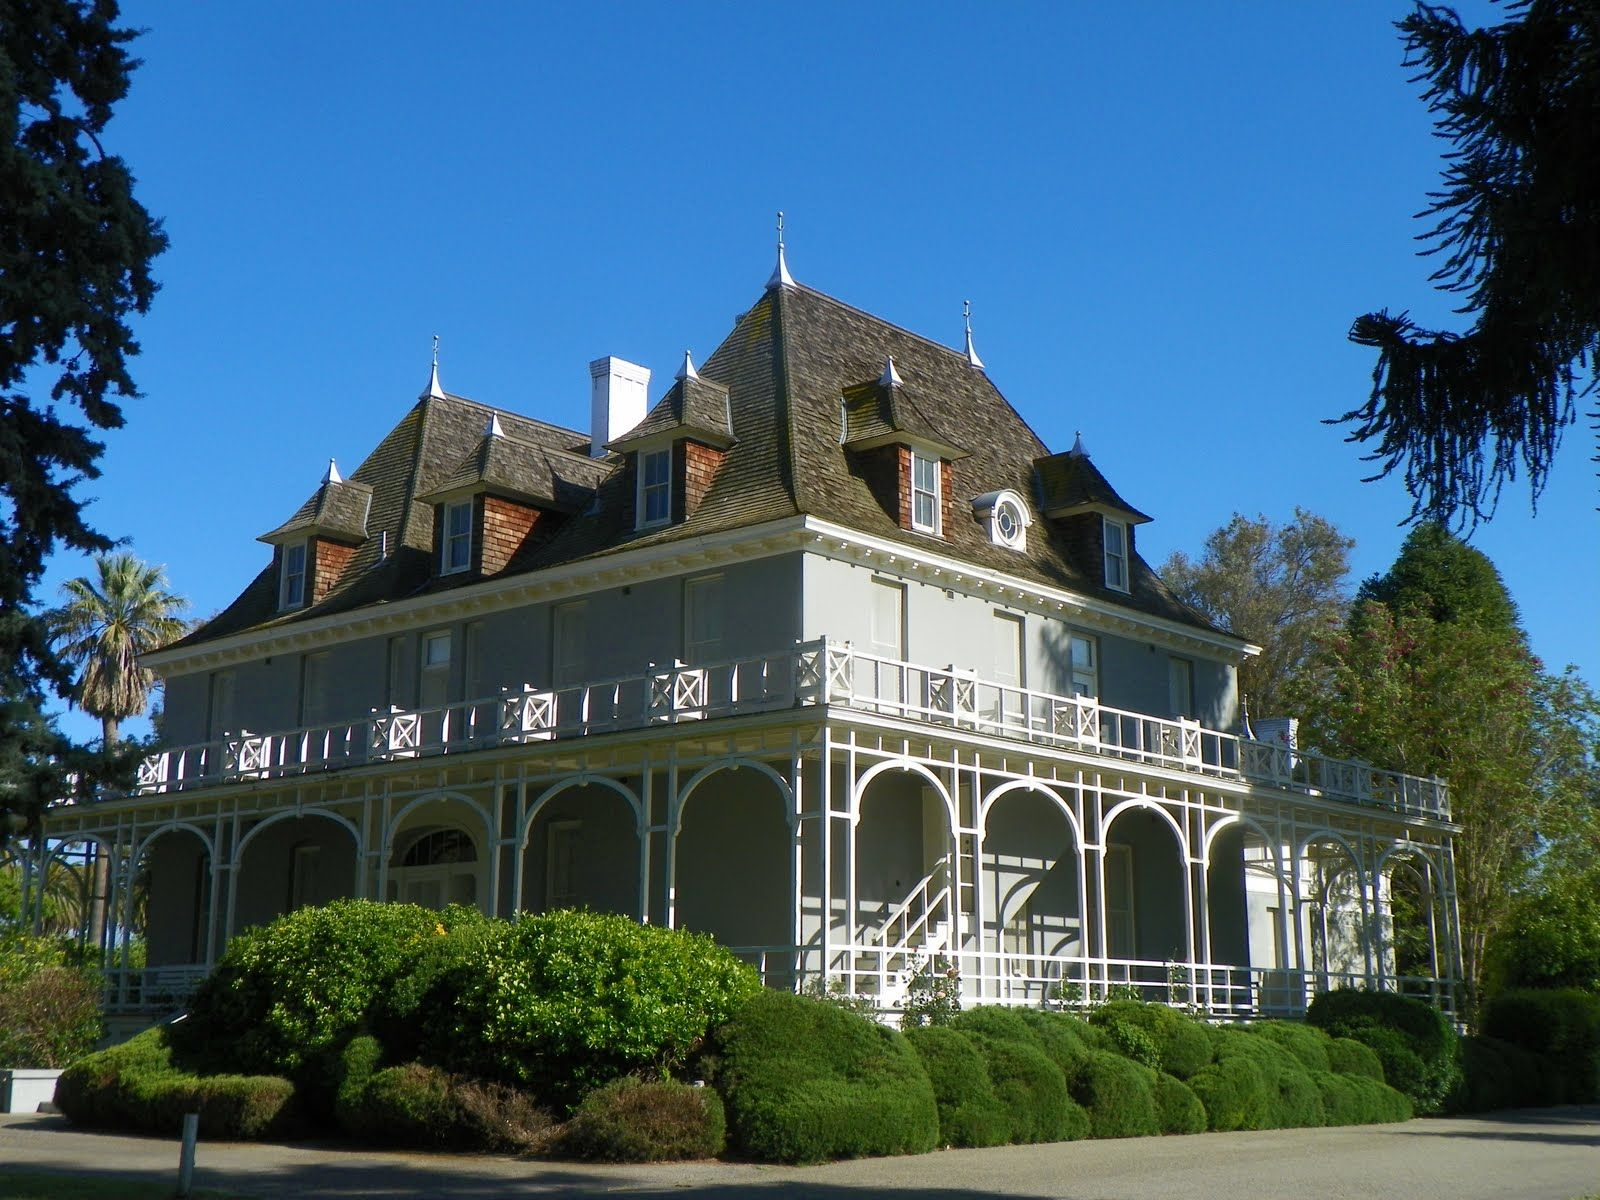 Tour kearney mansion history and info on public tours